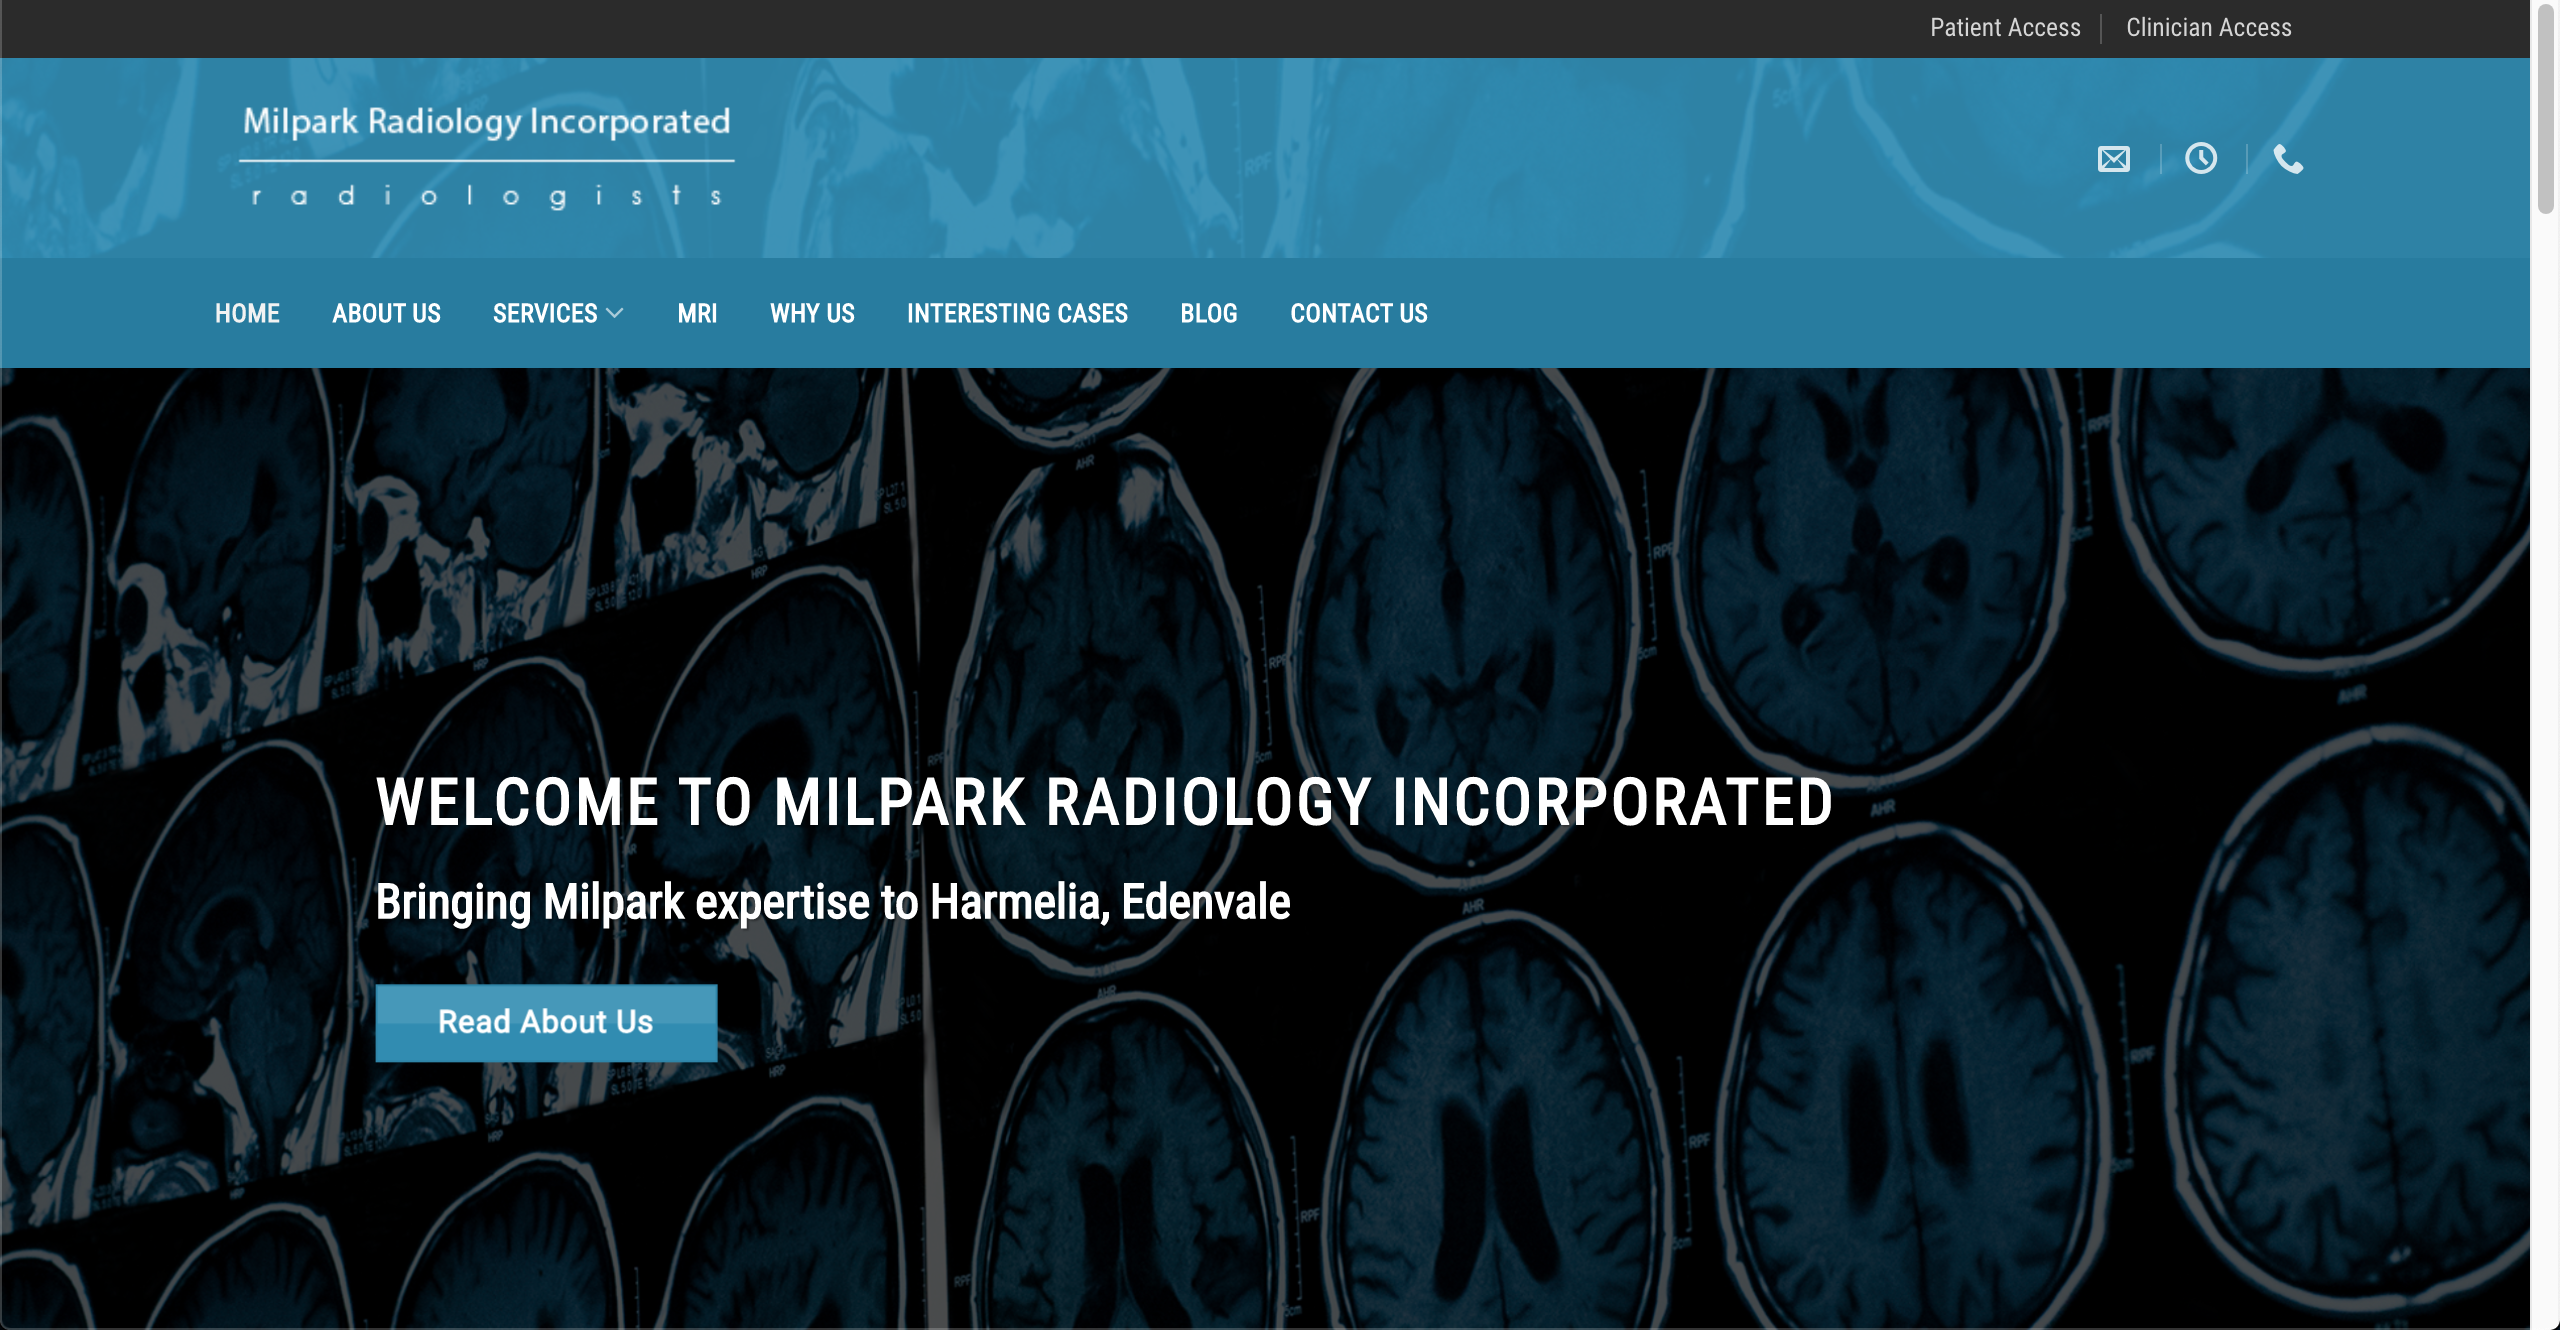 Milpark Radiology Incorporated